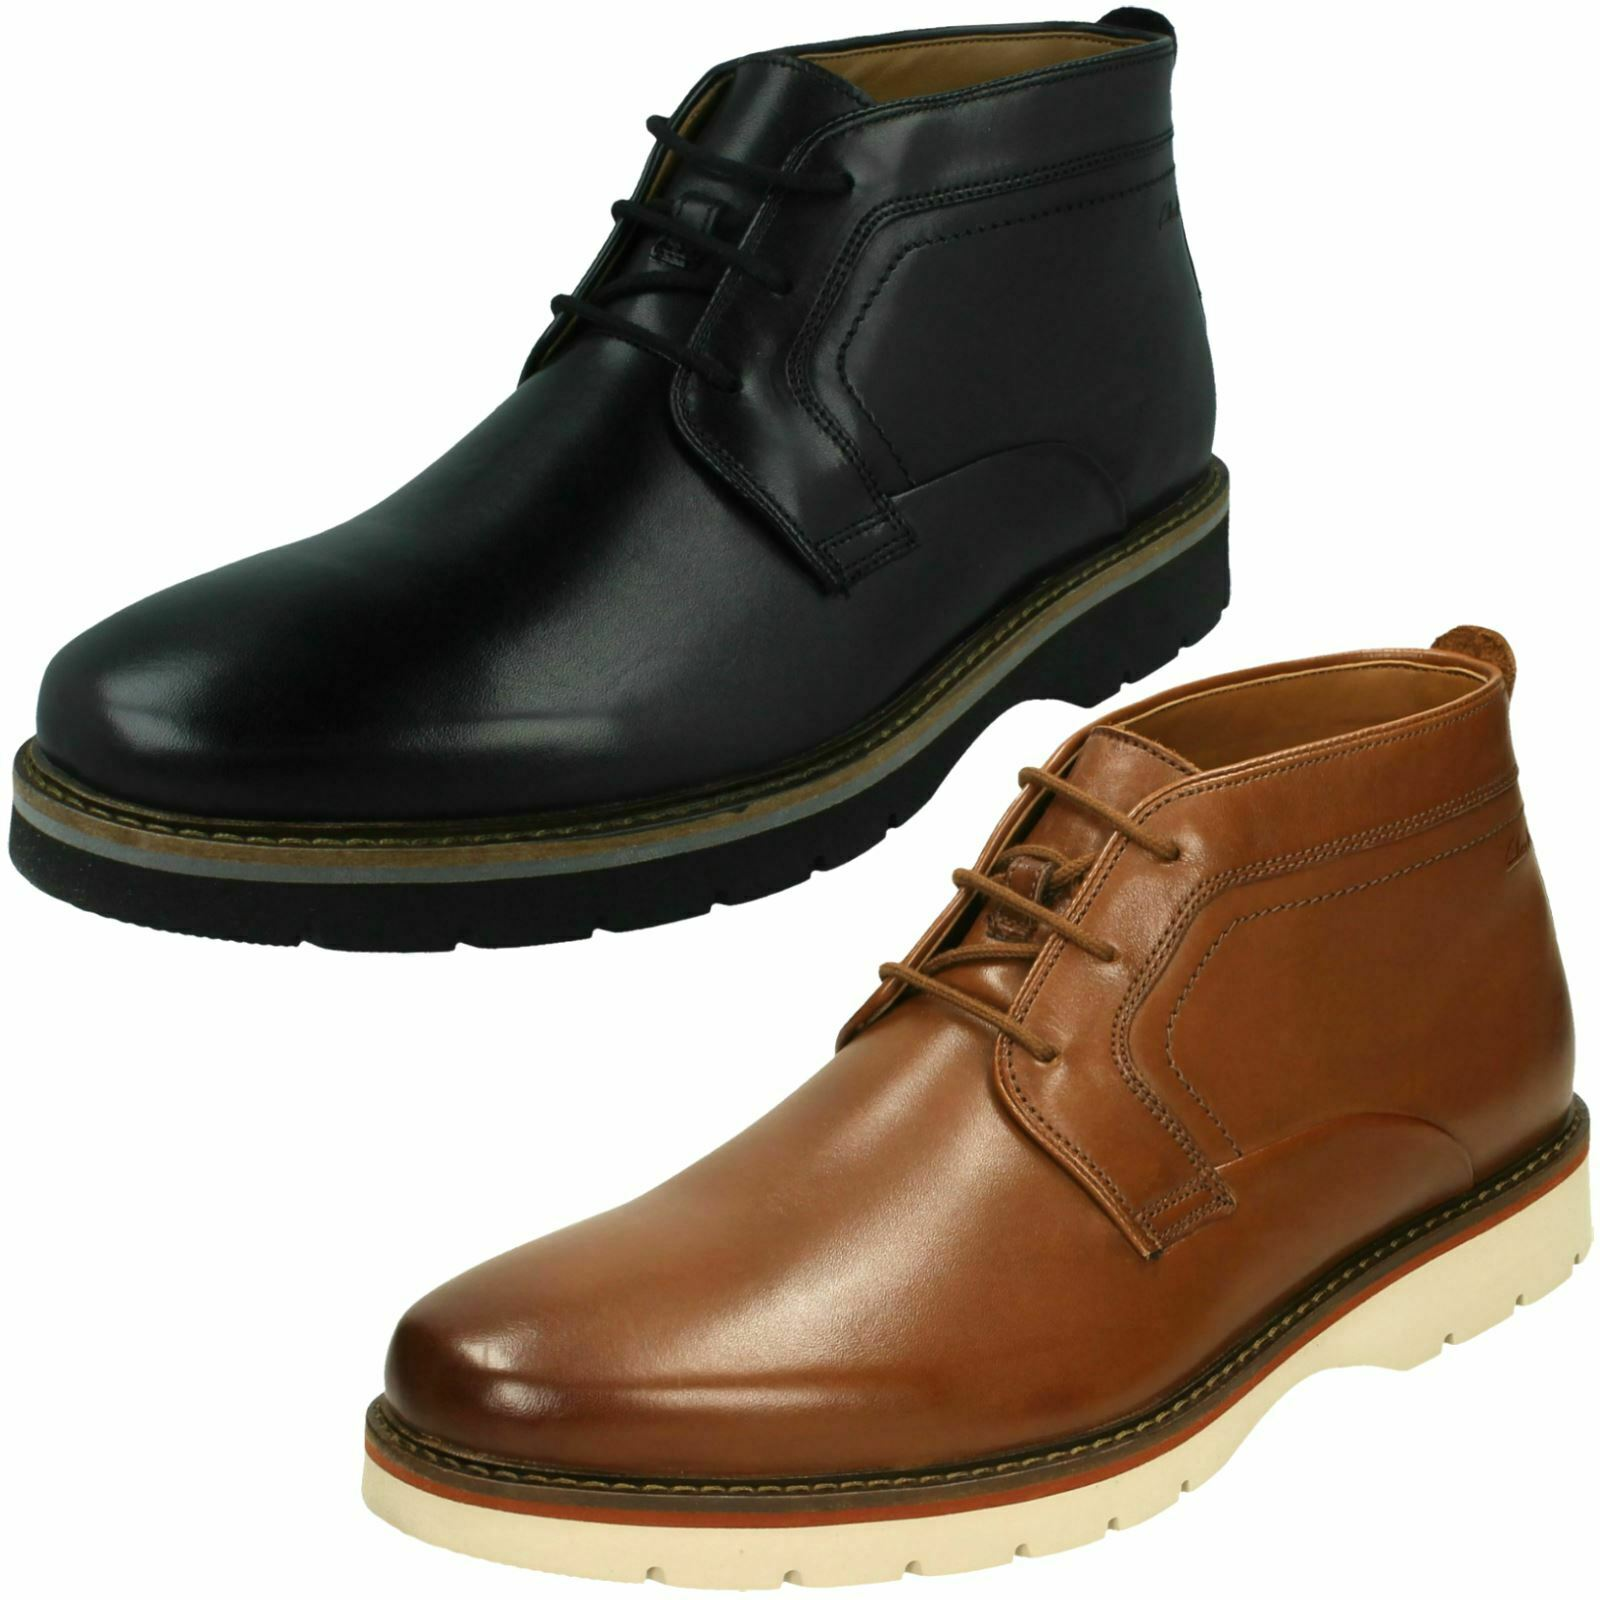 Mens Clarks Casual Ankle Boots